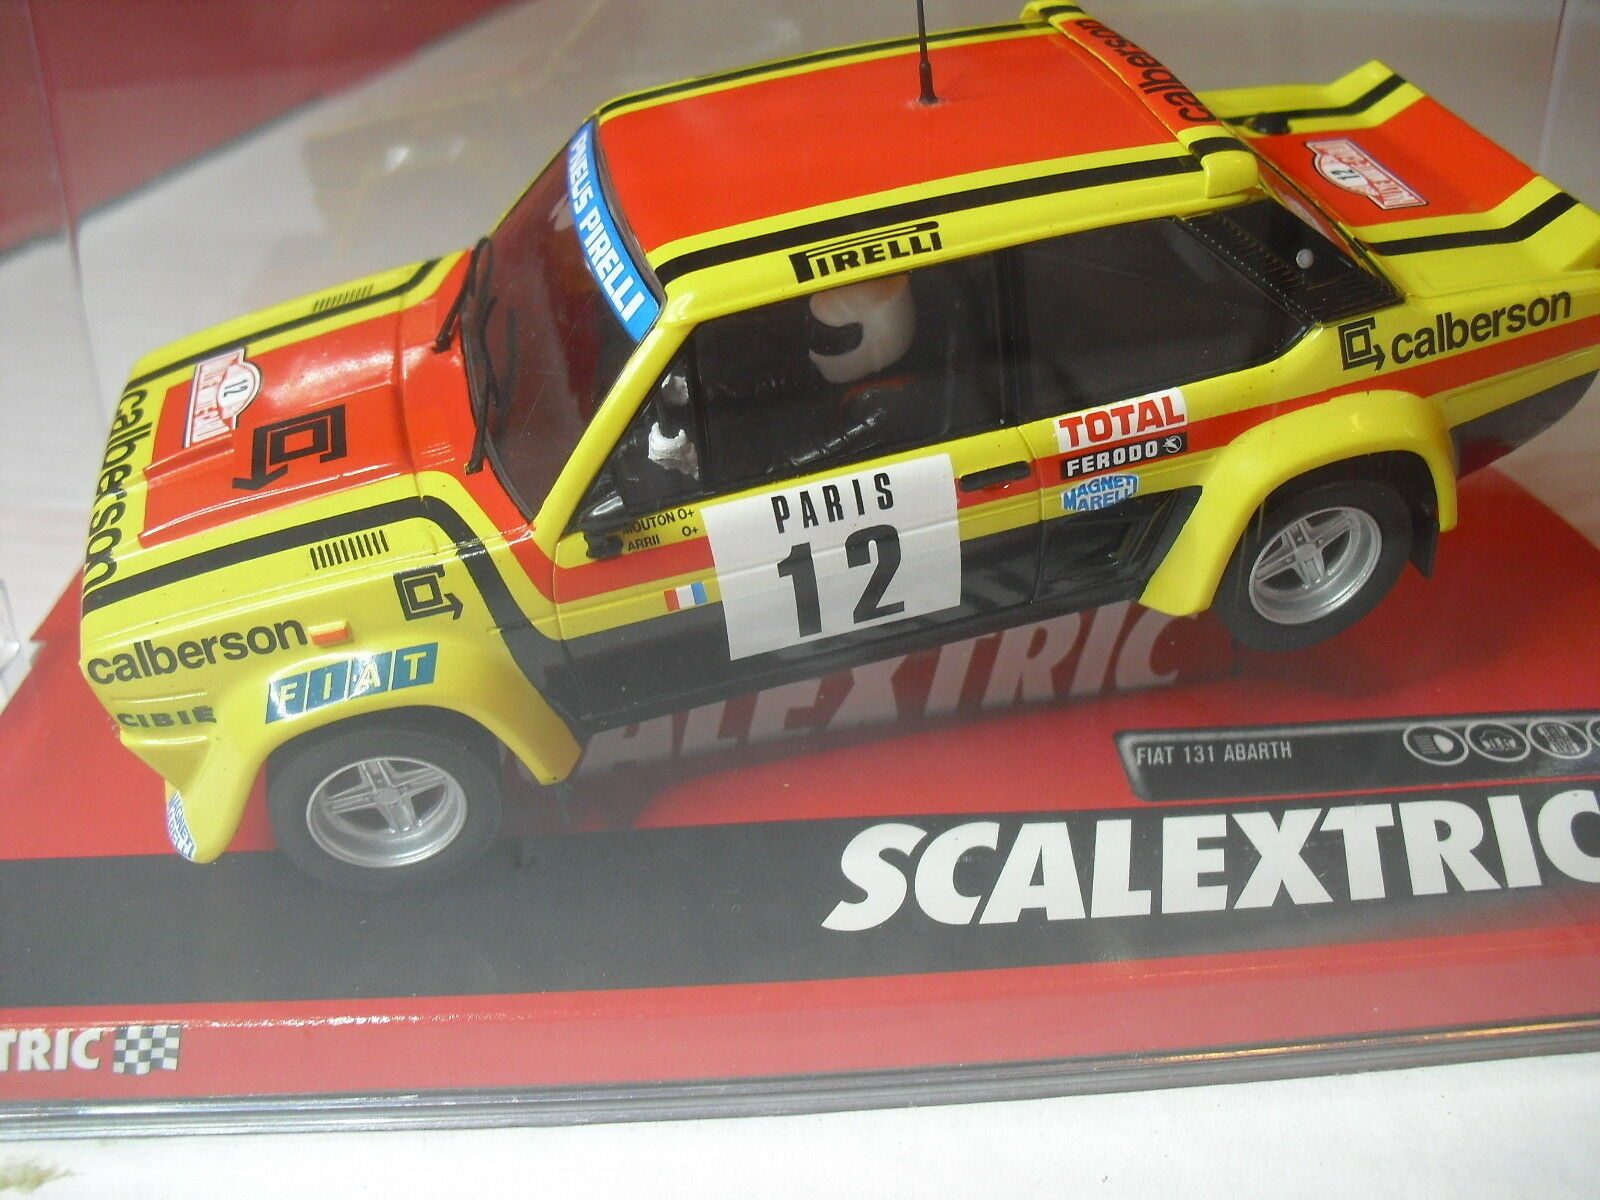 SCALEXTRIC A10194S300 FIAT 131 ABARTH Mounton-Montecarlo 1 32 new